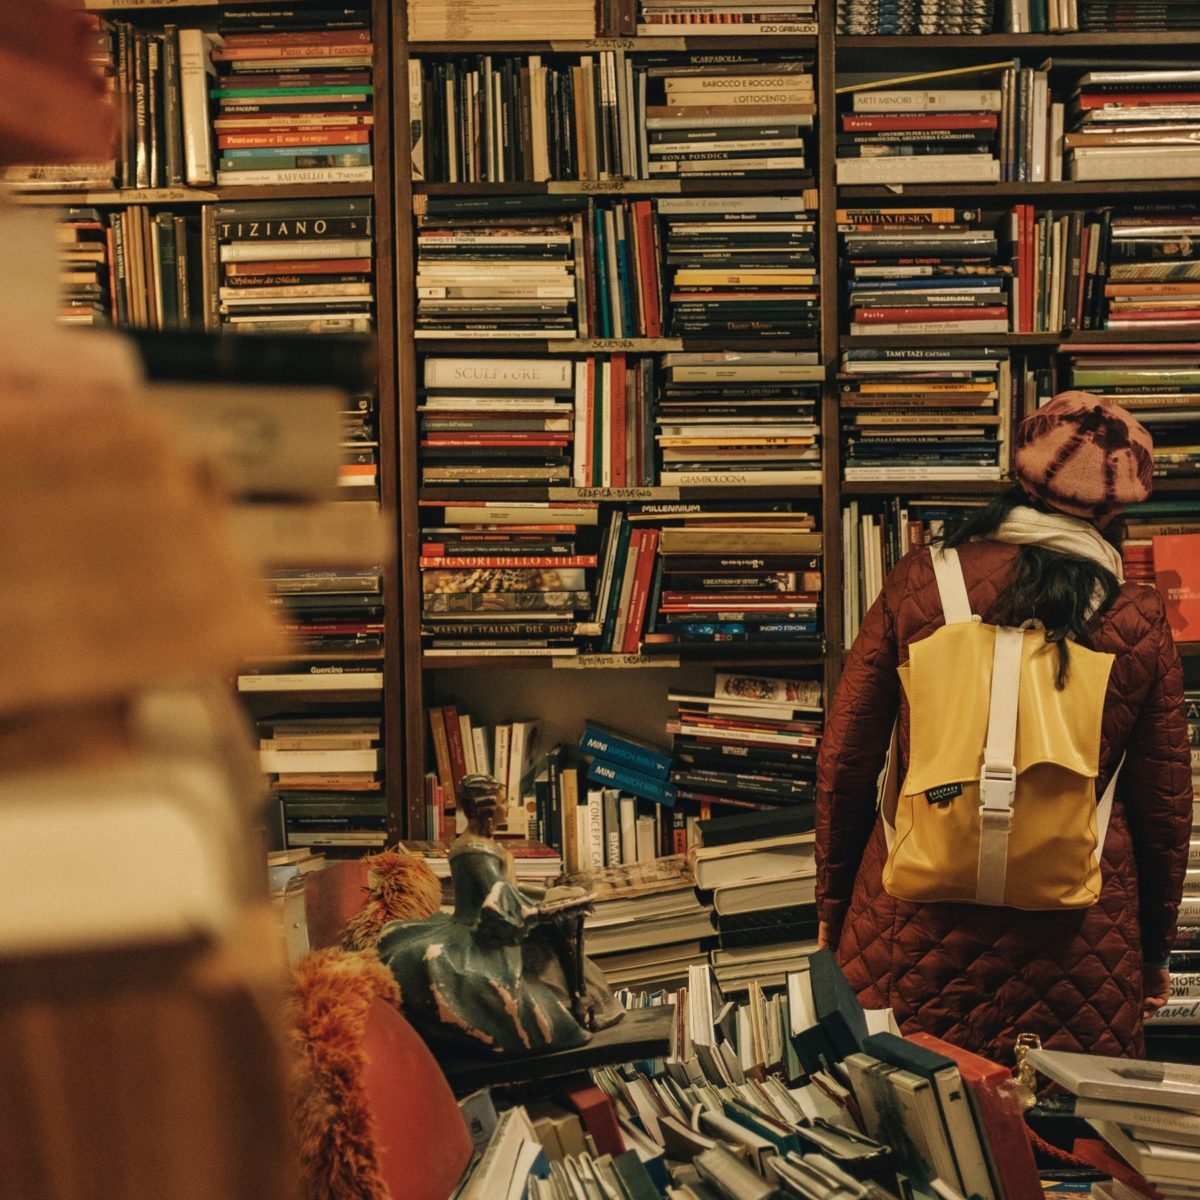 Woman with backpack looking at books on jumbled shelves